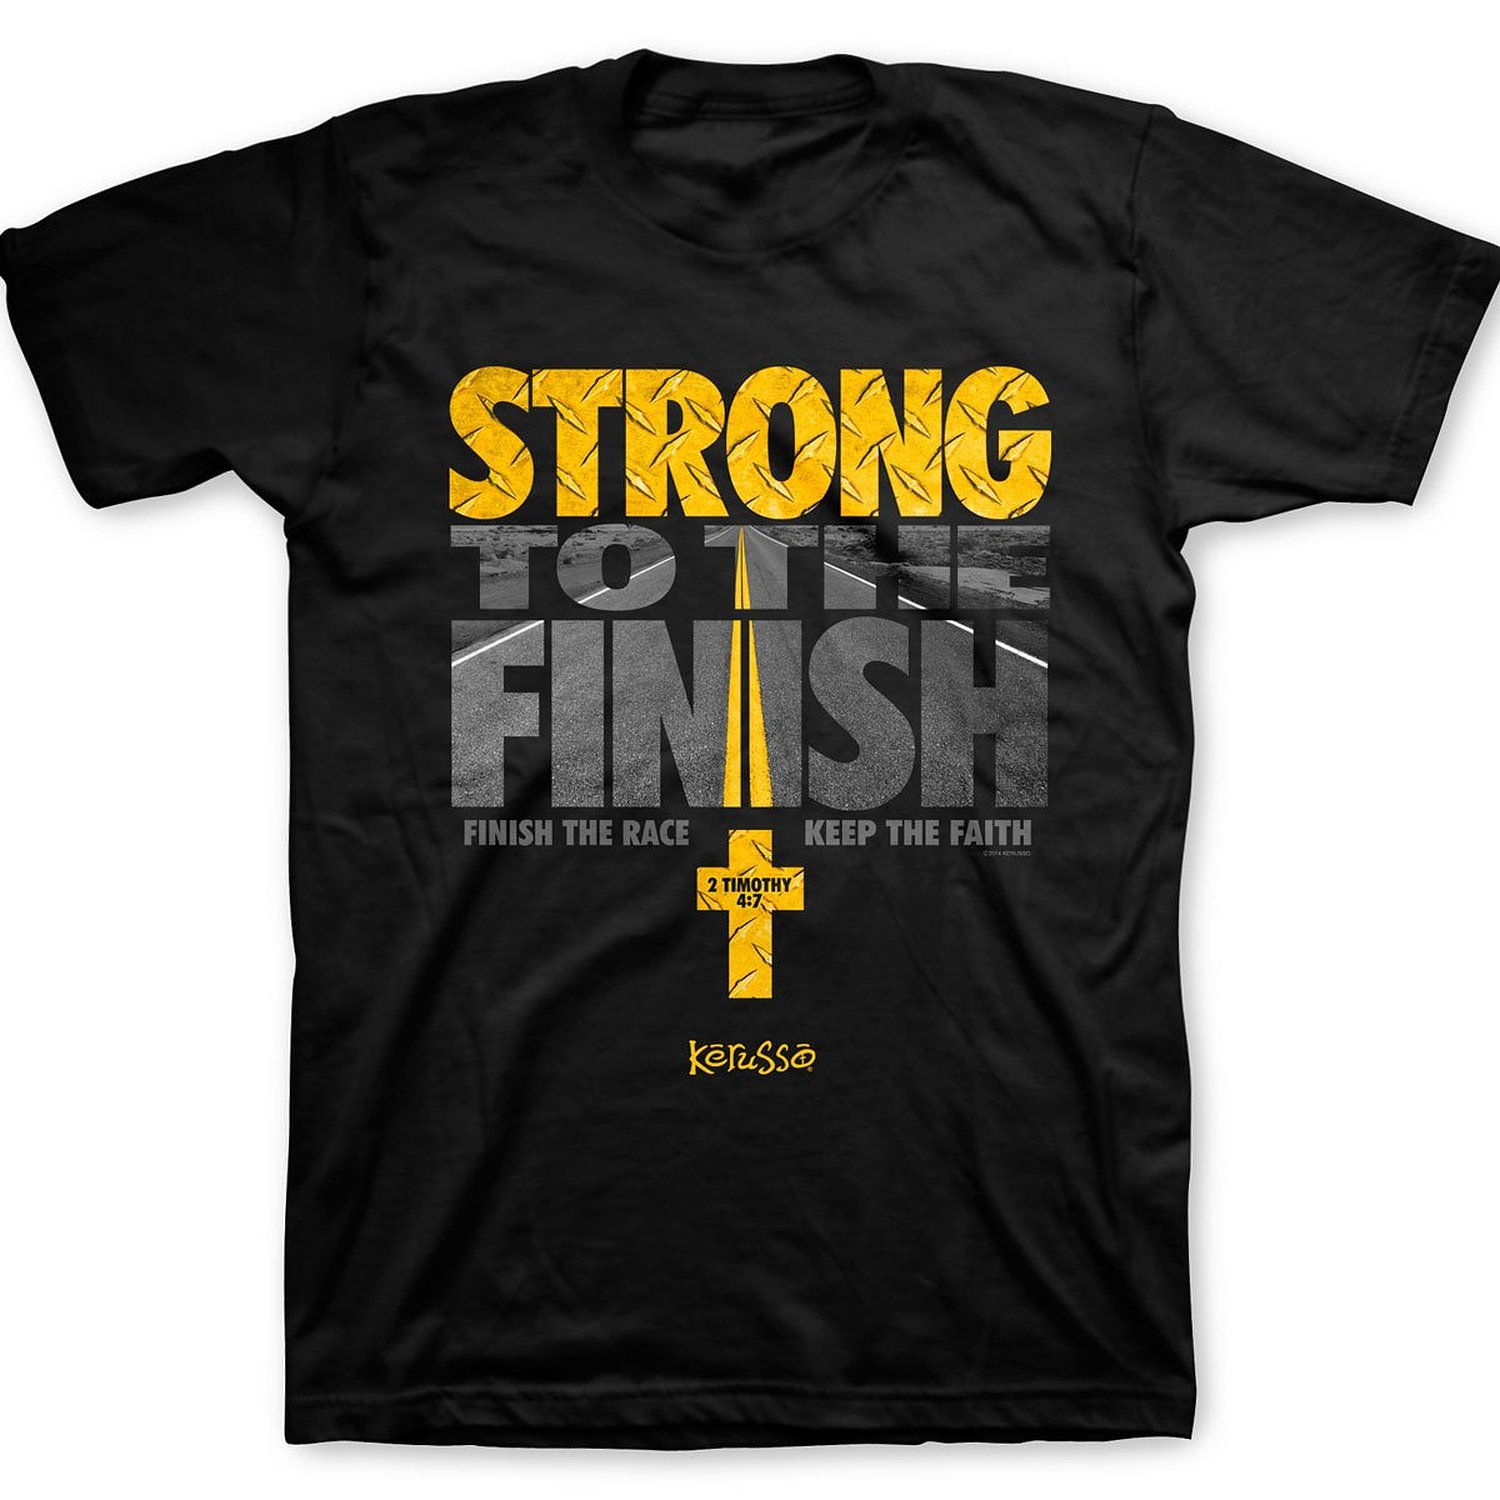 Strong To The Finish T-Shirt Summer Casual Man T Shirt Good Quality Top Tee Short Sleeve ...